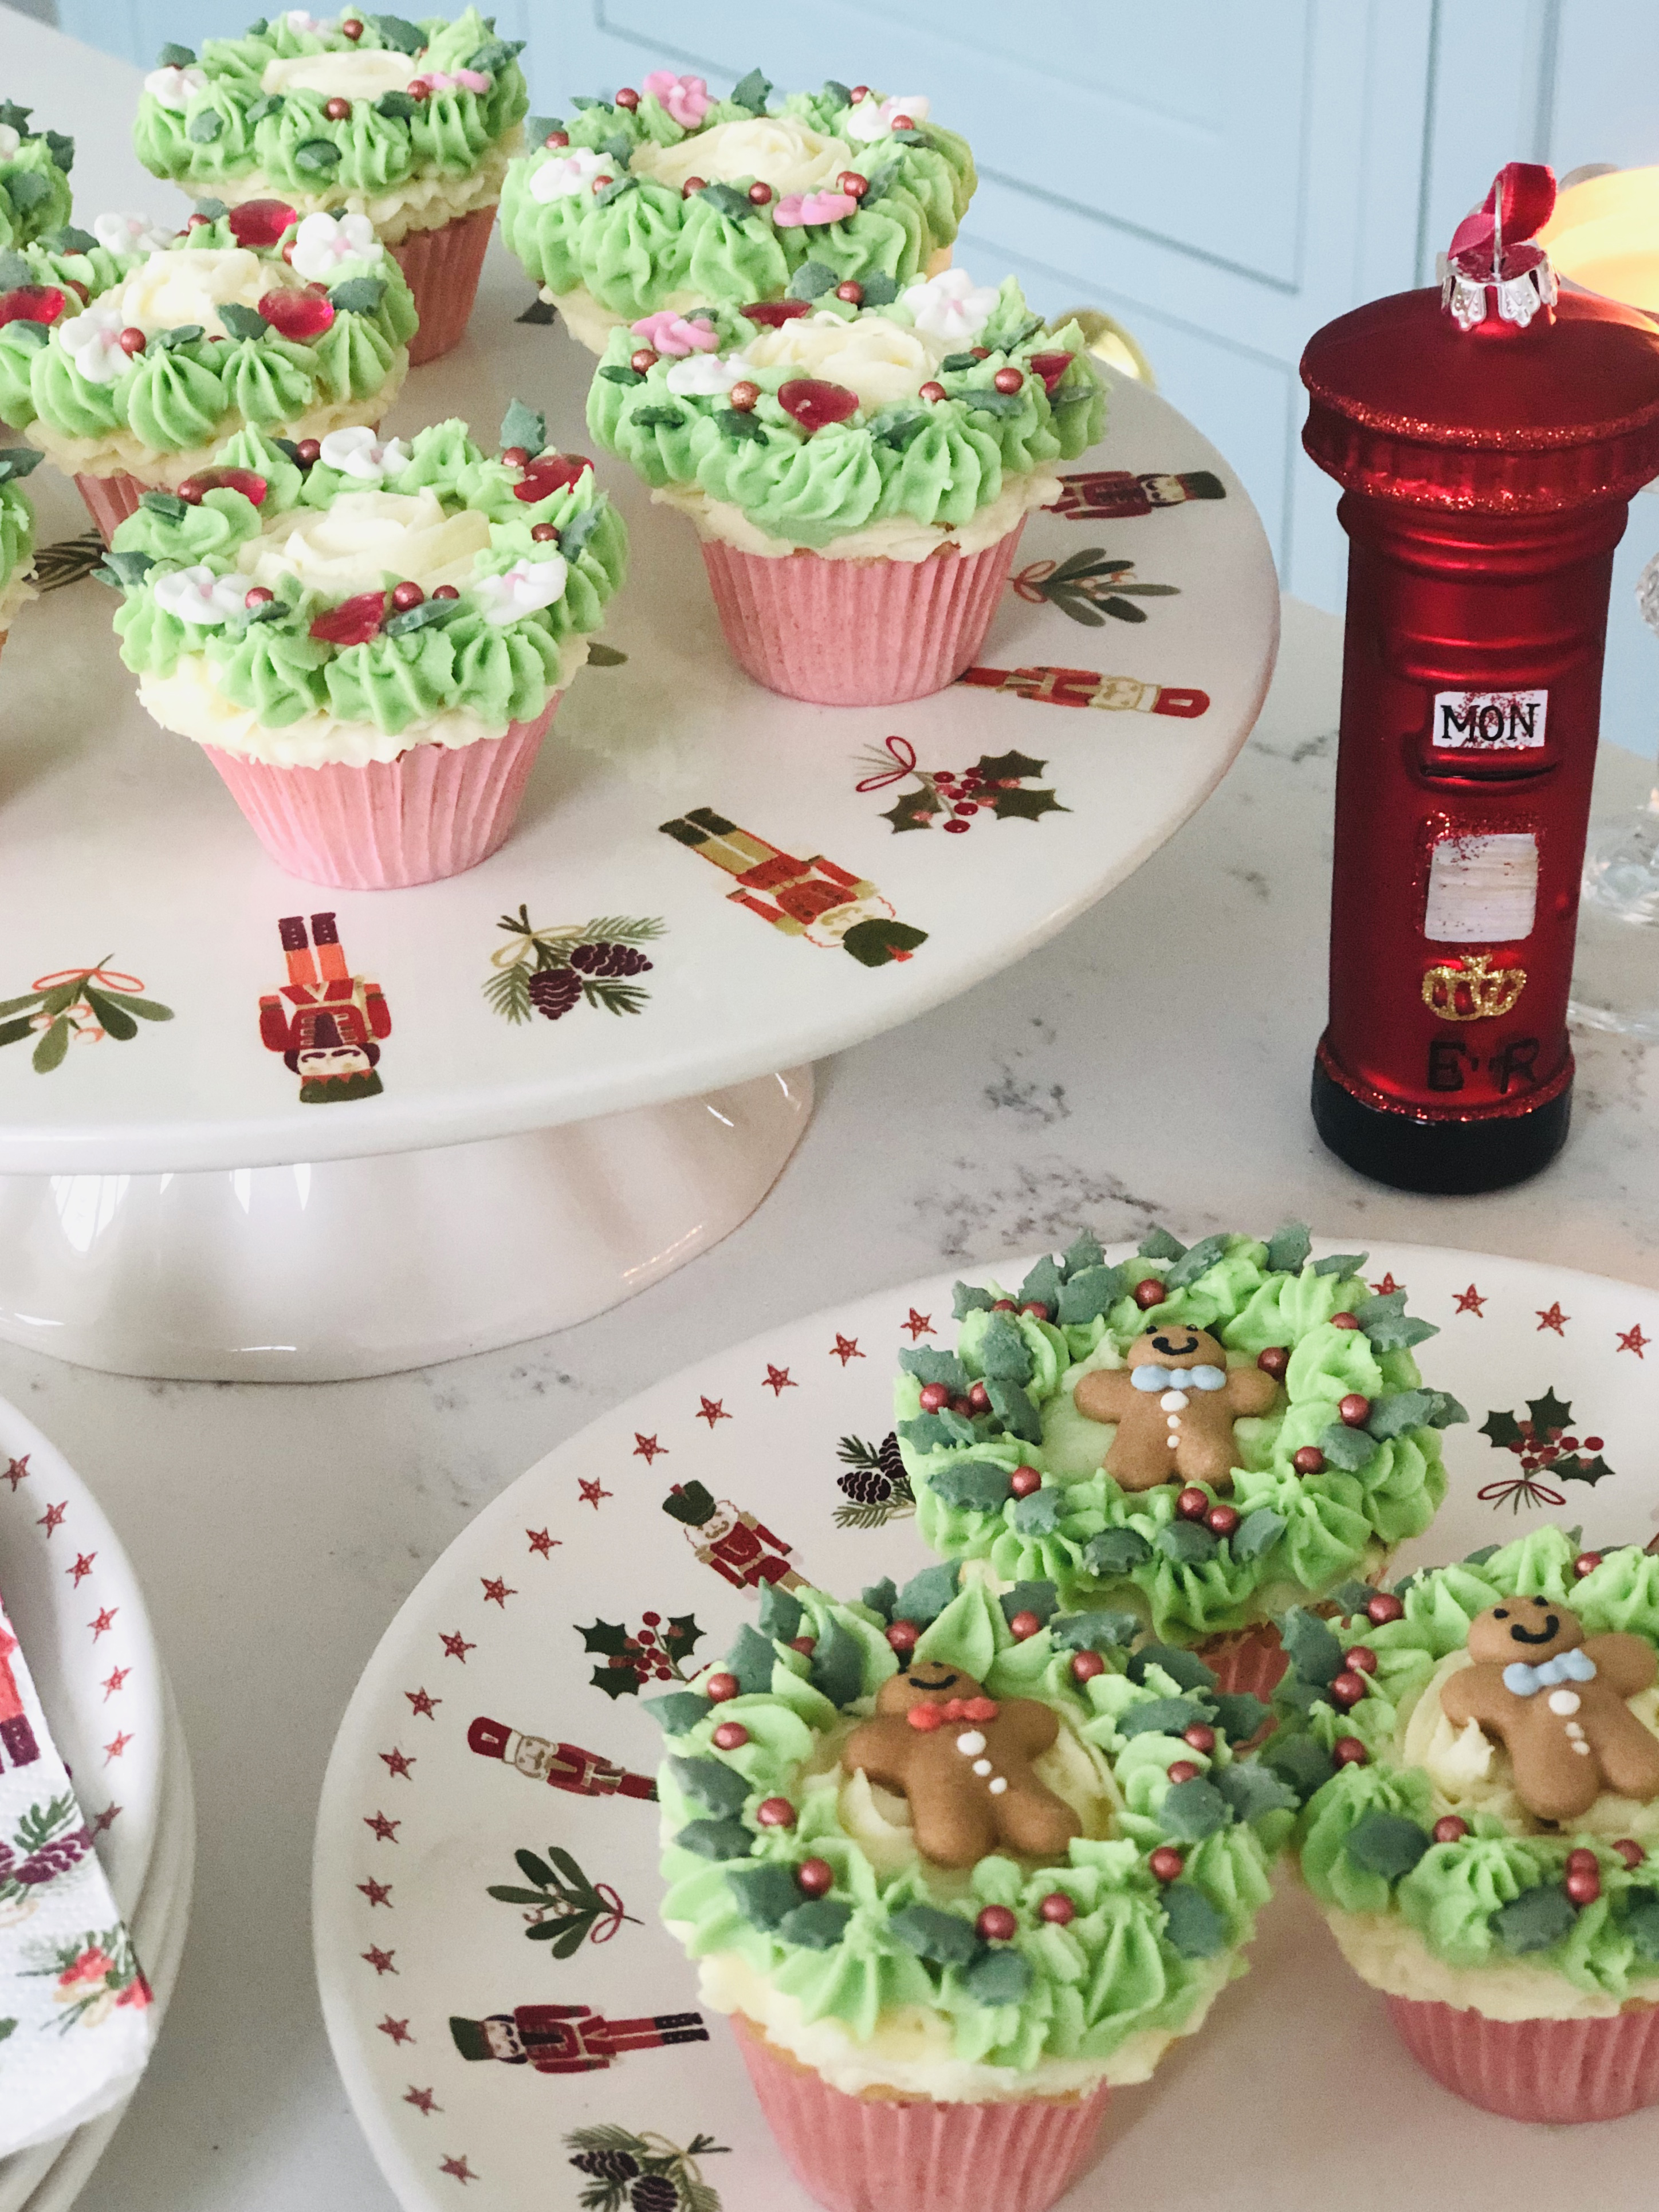 Festive Christmas Wreath Cupcakes